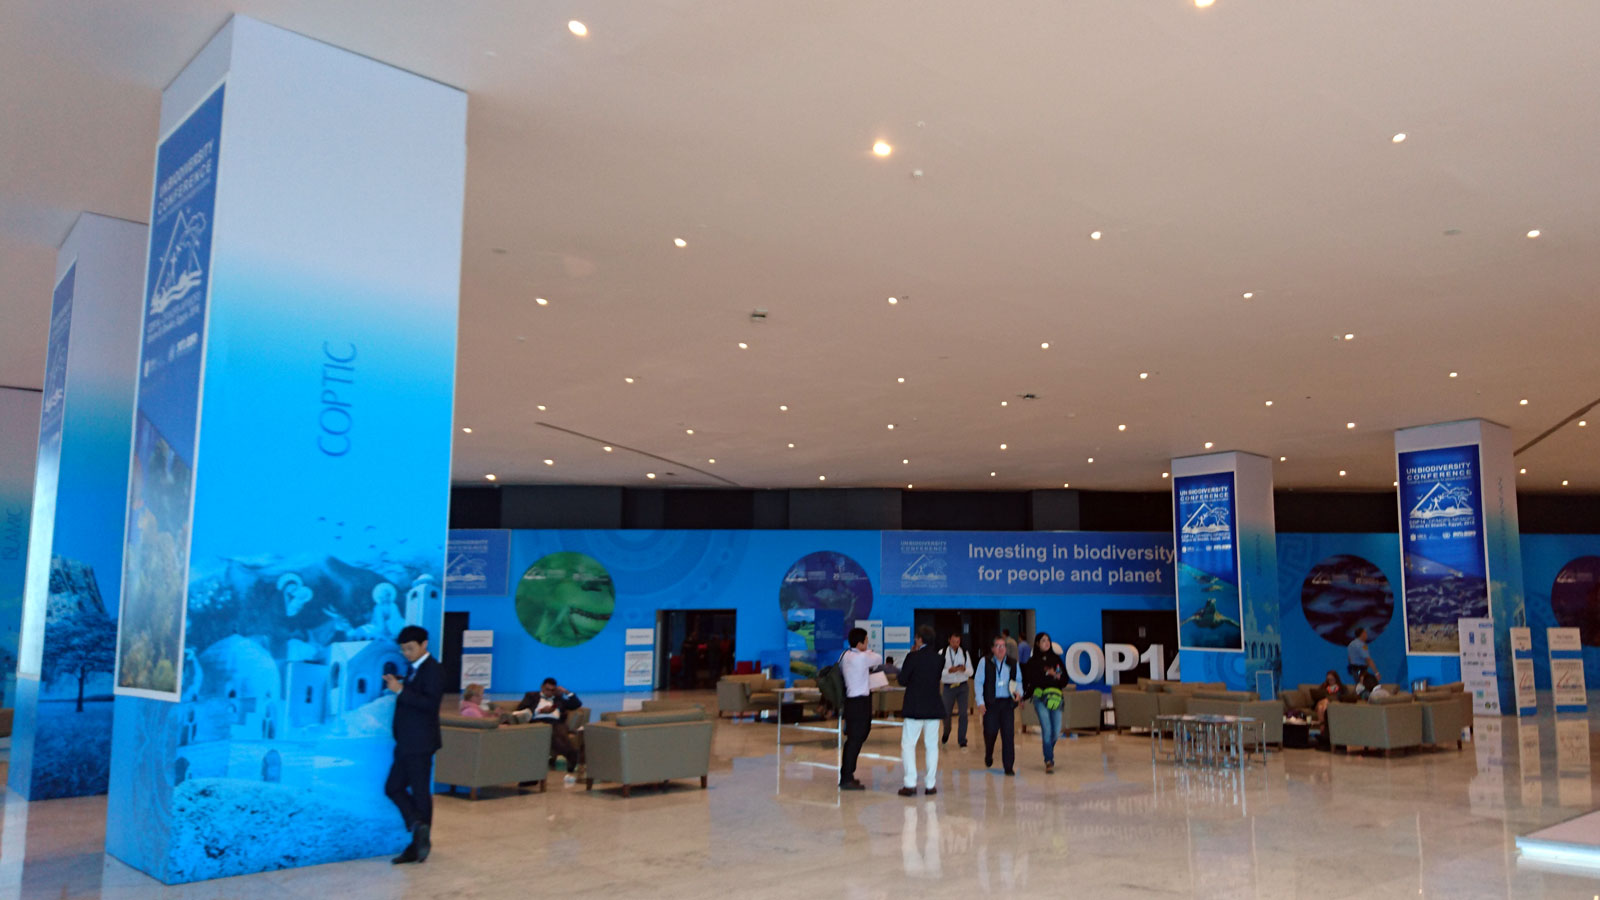 UN Biodiversity Conference in Sharm El Sheikh